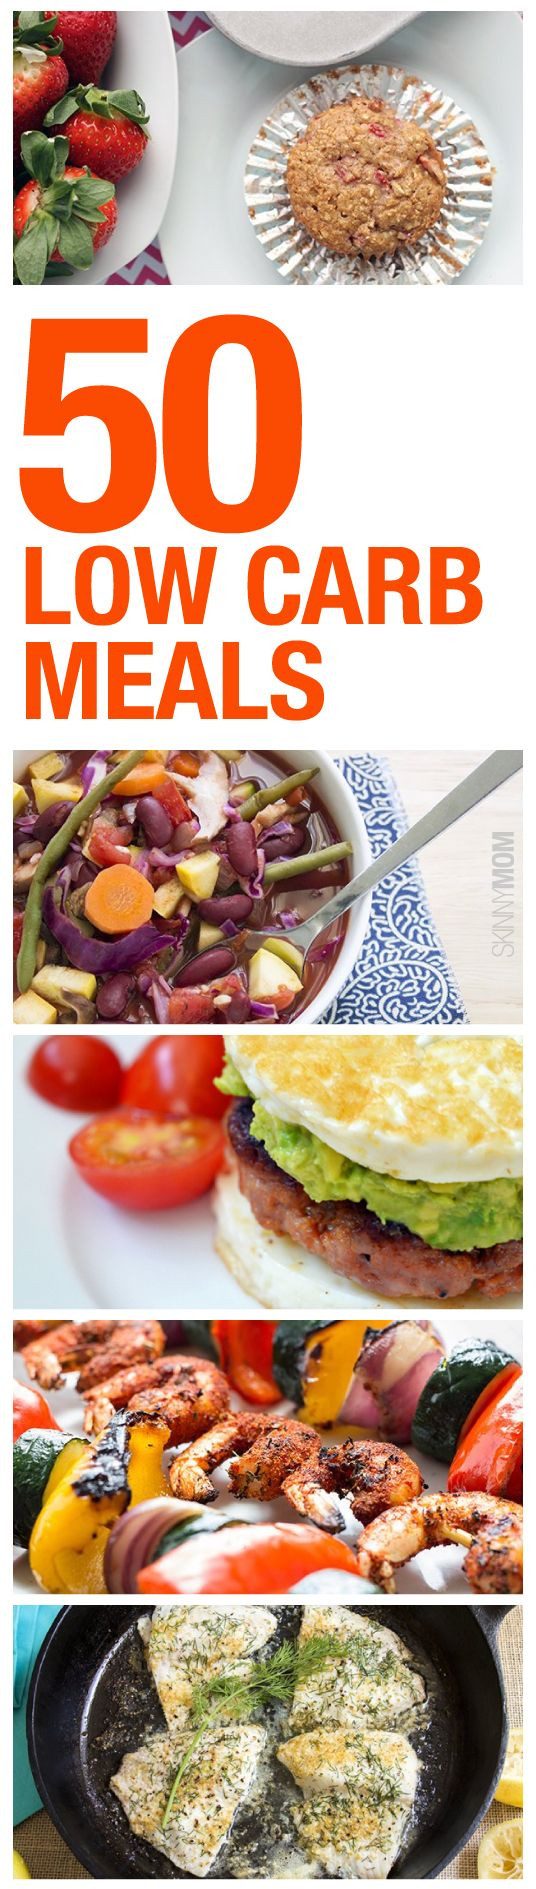 Watching your carb intake? Check out these 50 low carb breakfasts, lunch dinner, and snack options that will keep your body in shape and your tastebuds happy!